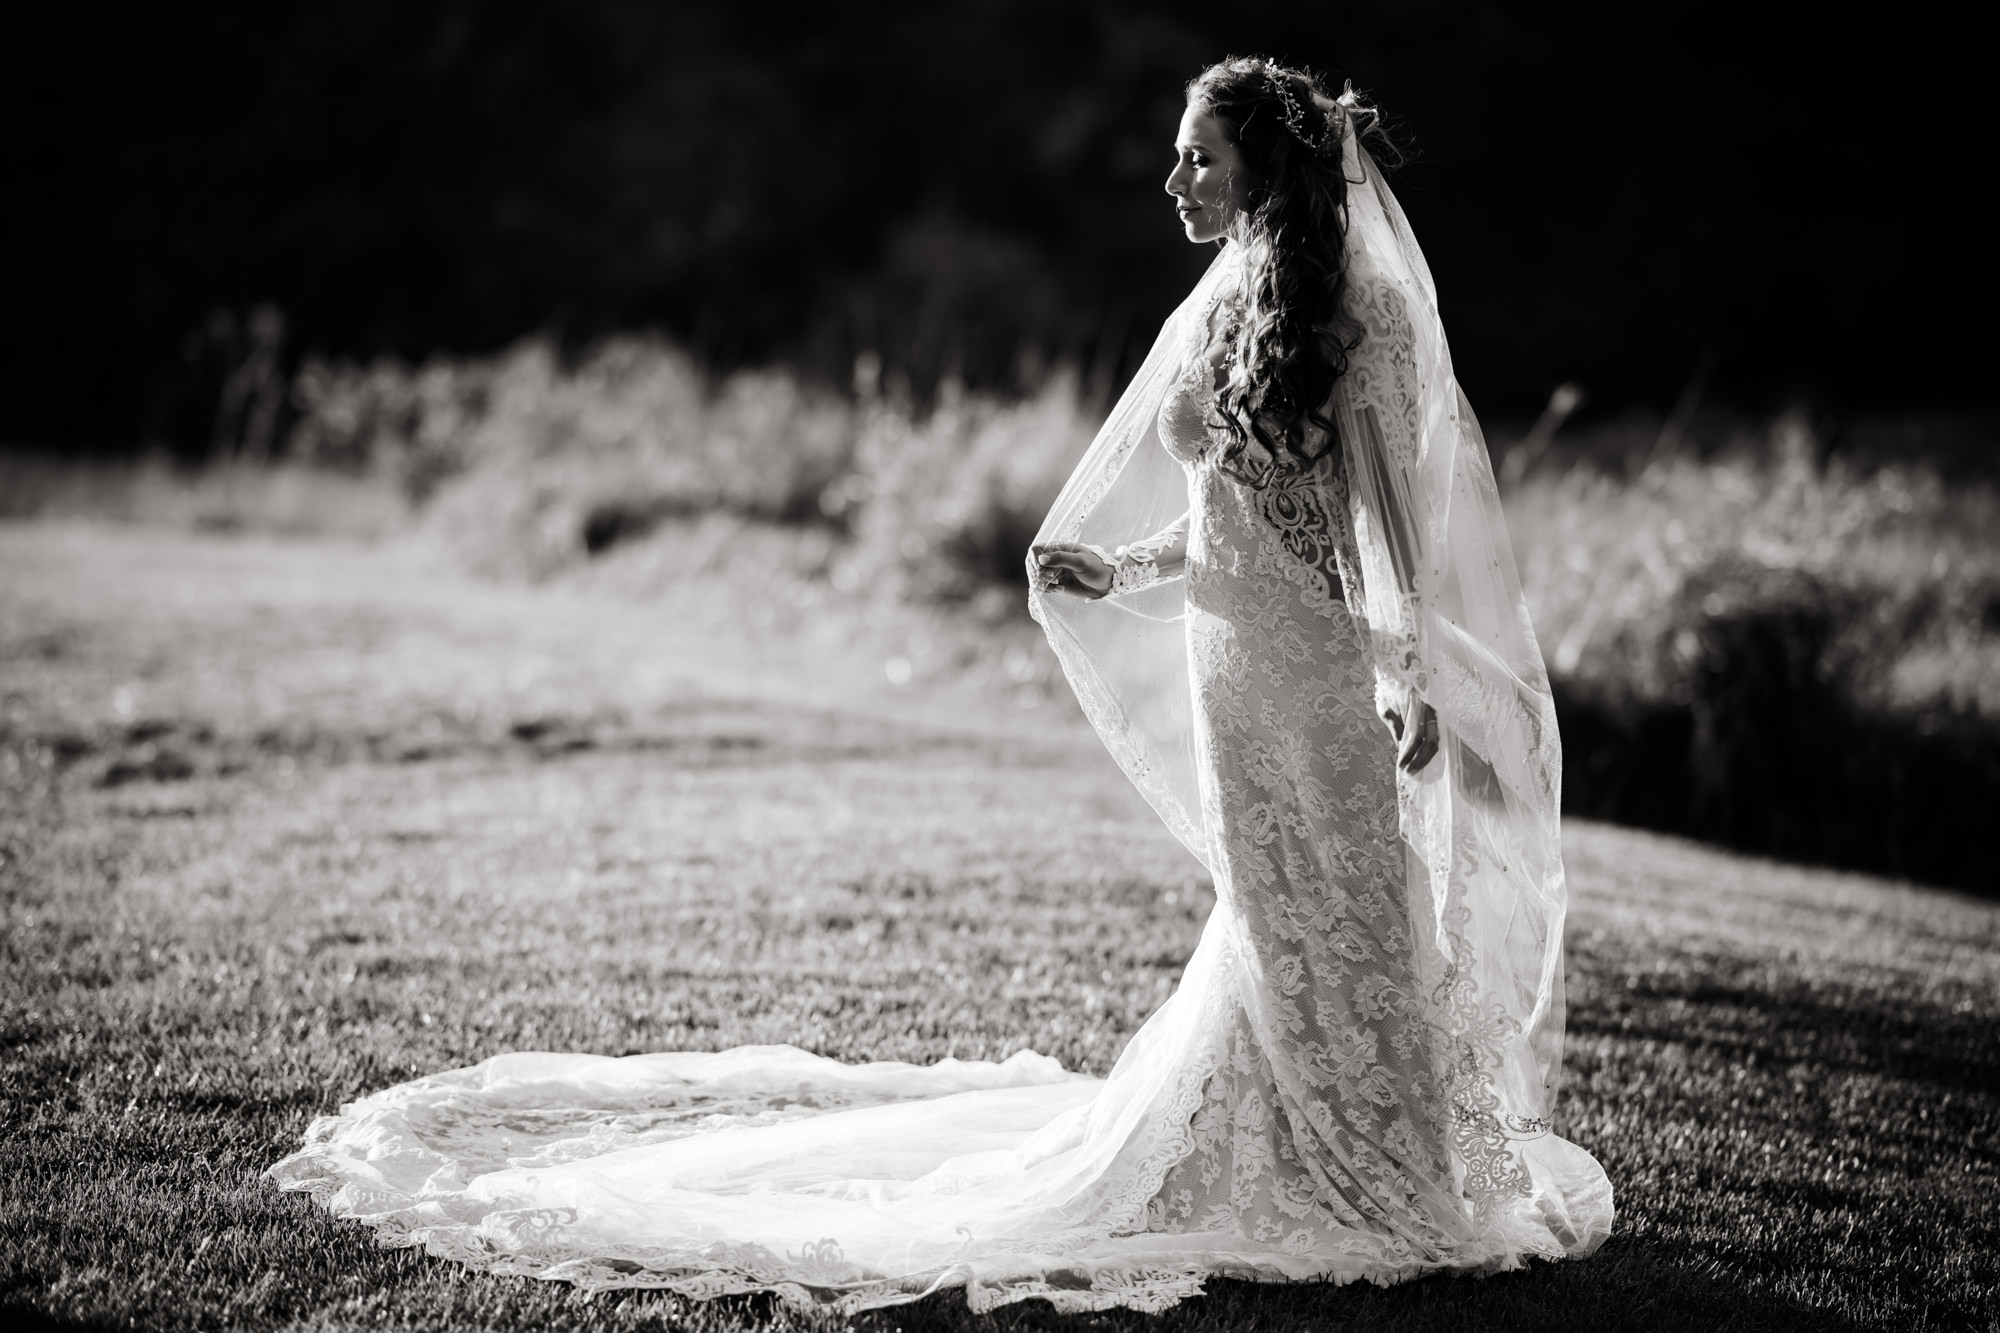 Sepia bride wearing lace grown in field photo by Cliff Mautner